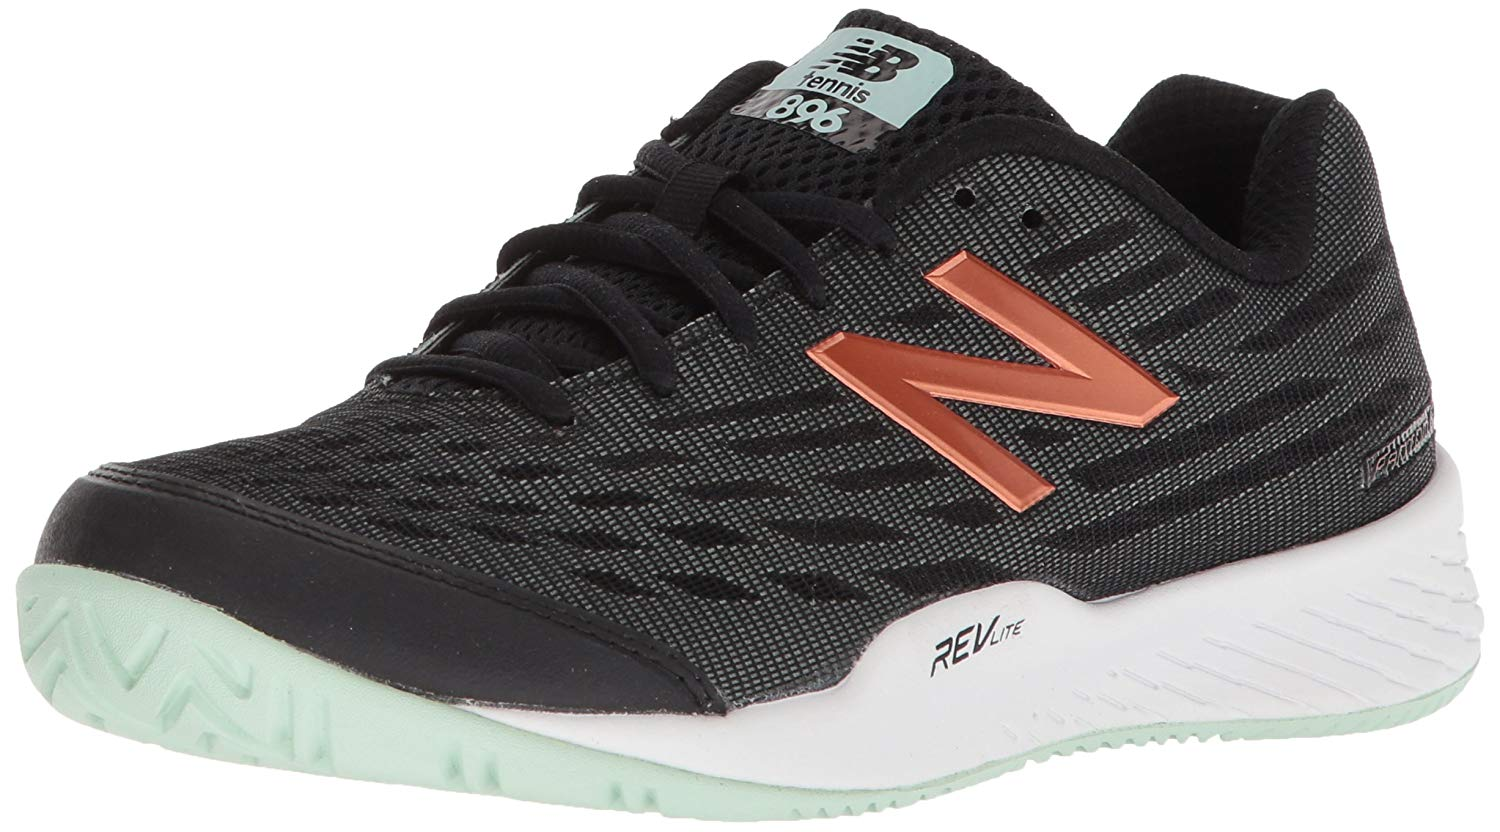 Details about New Balance Womens WCH896V2 Low Top Lace Up Tennis, BlackSeafoam, Size 5.0